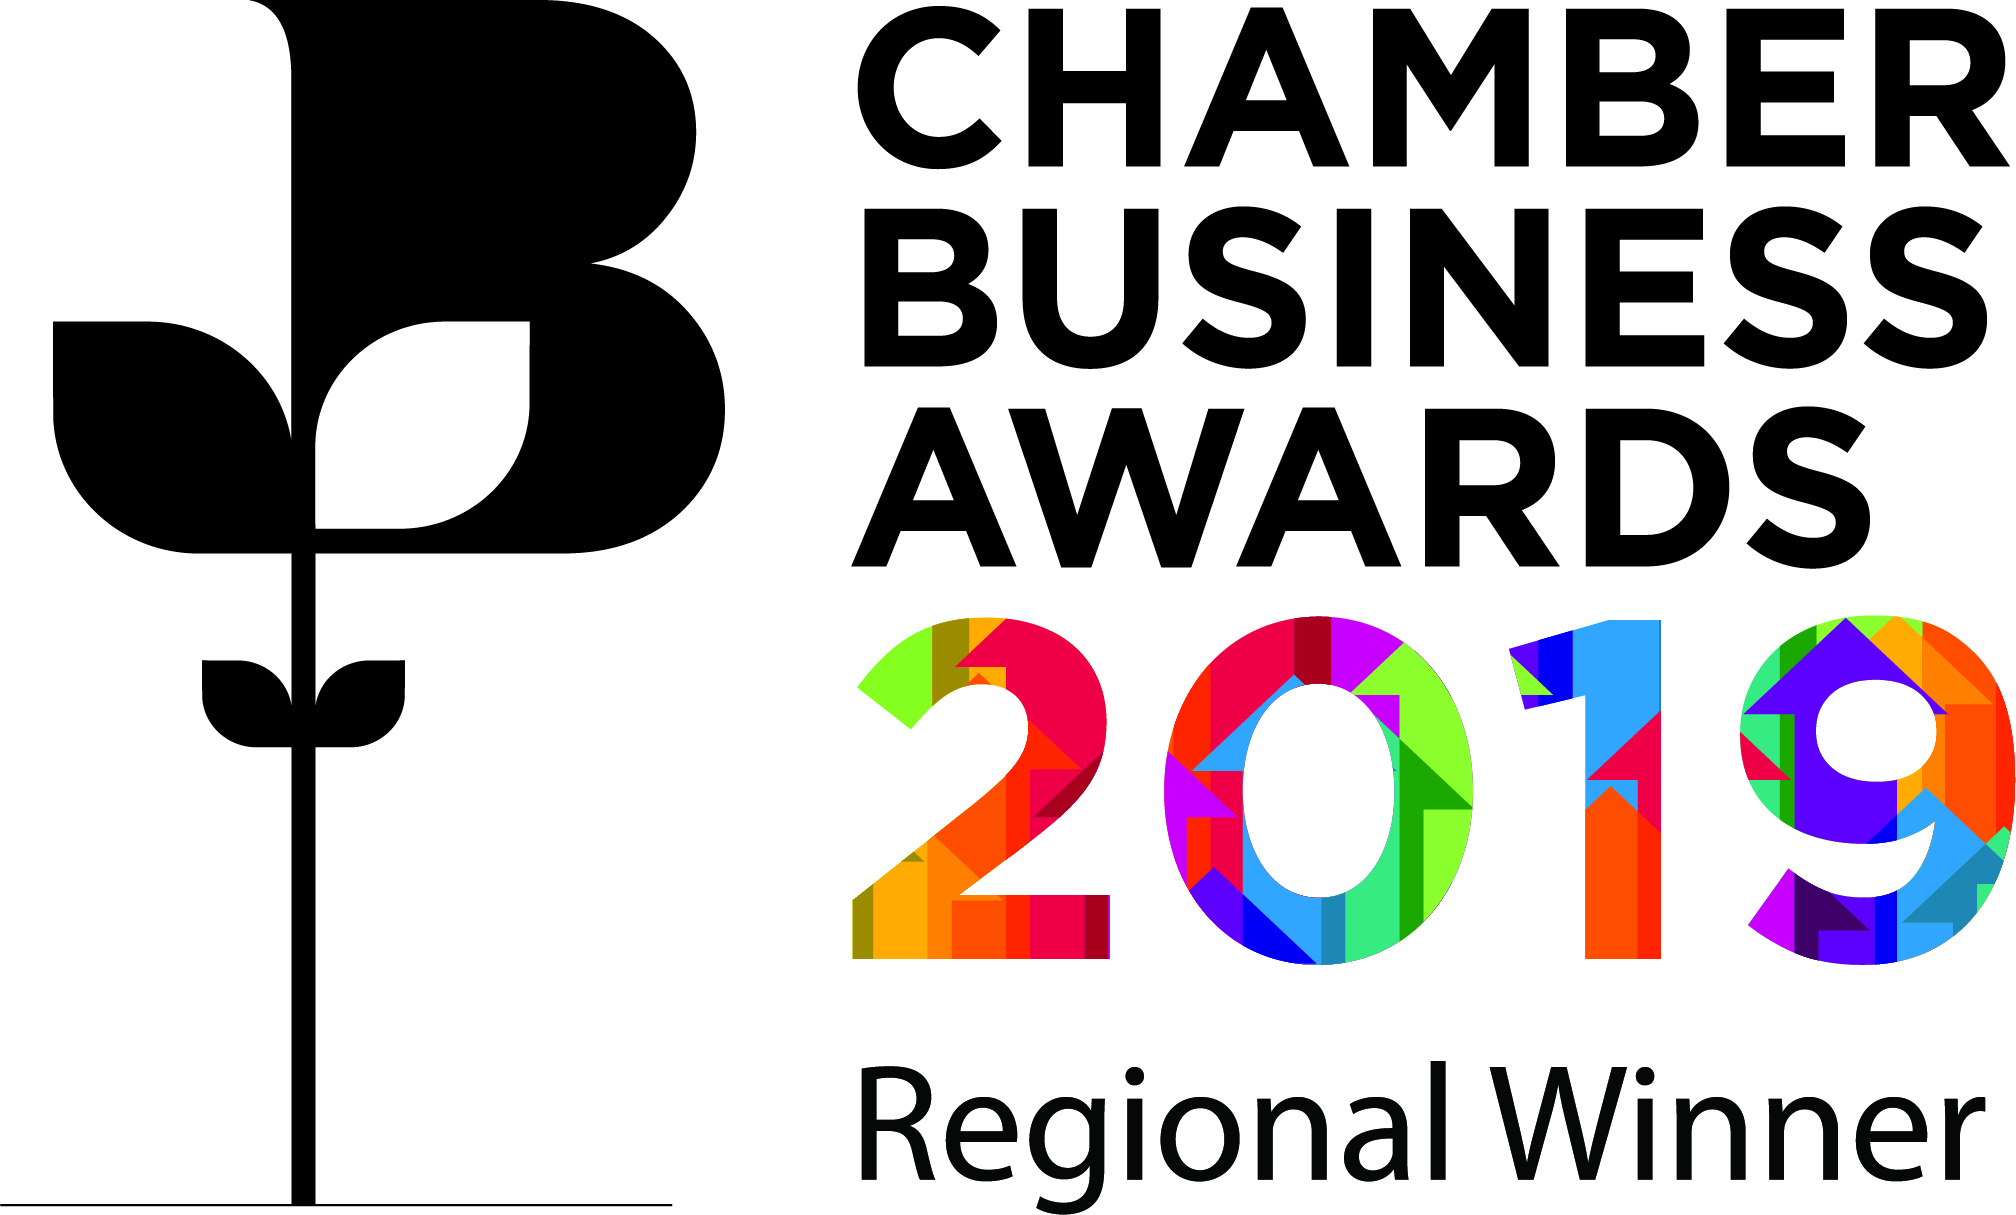 2019 Chamber Business Awards regional win for Essential